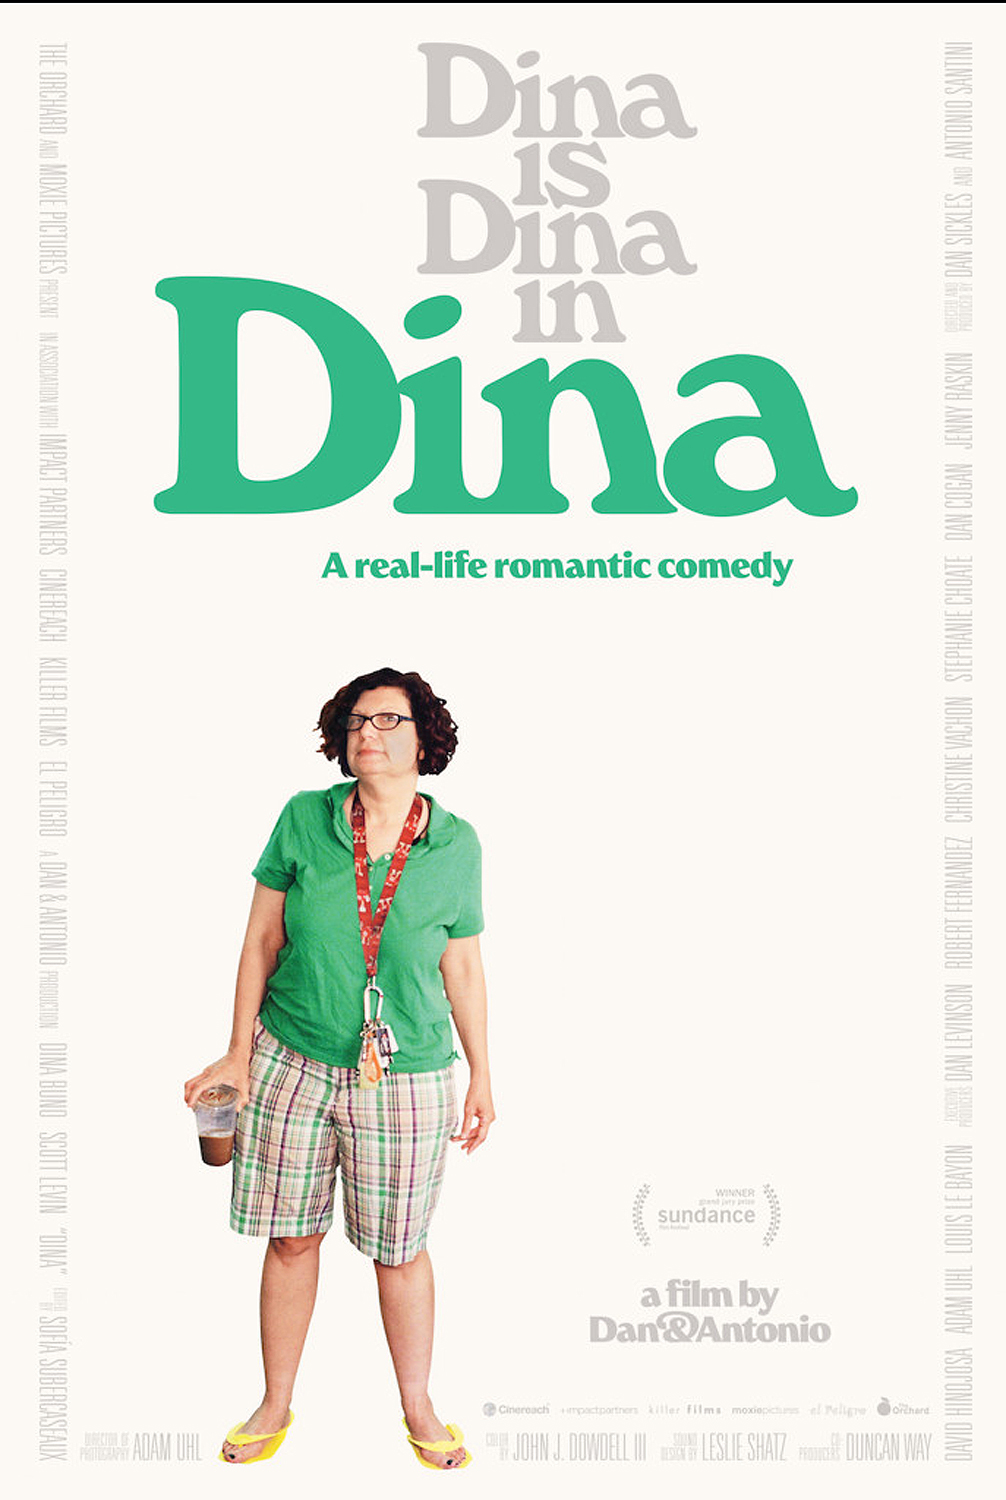 dina_one-sheet_movie-poster_02